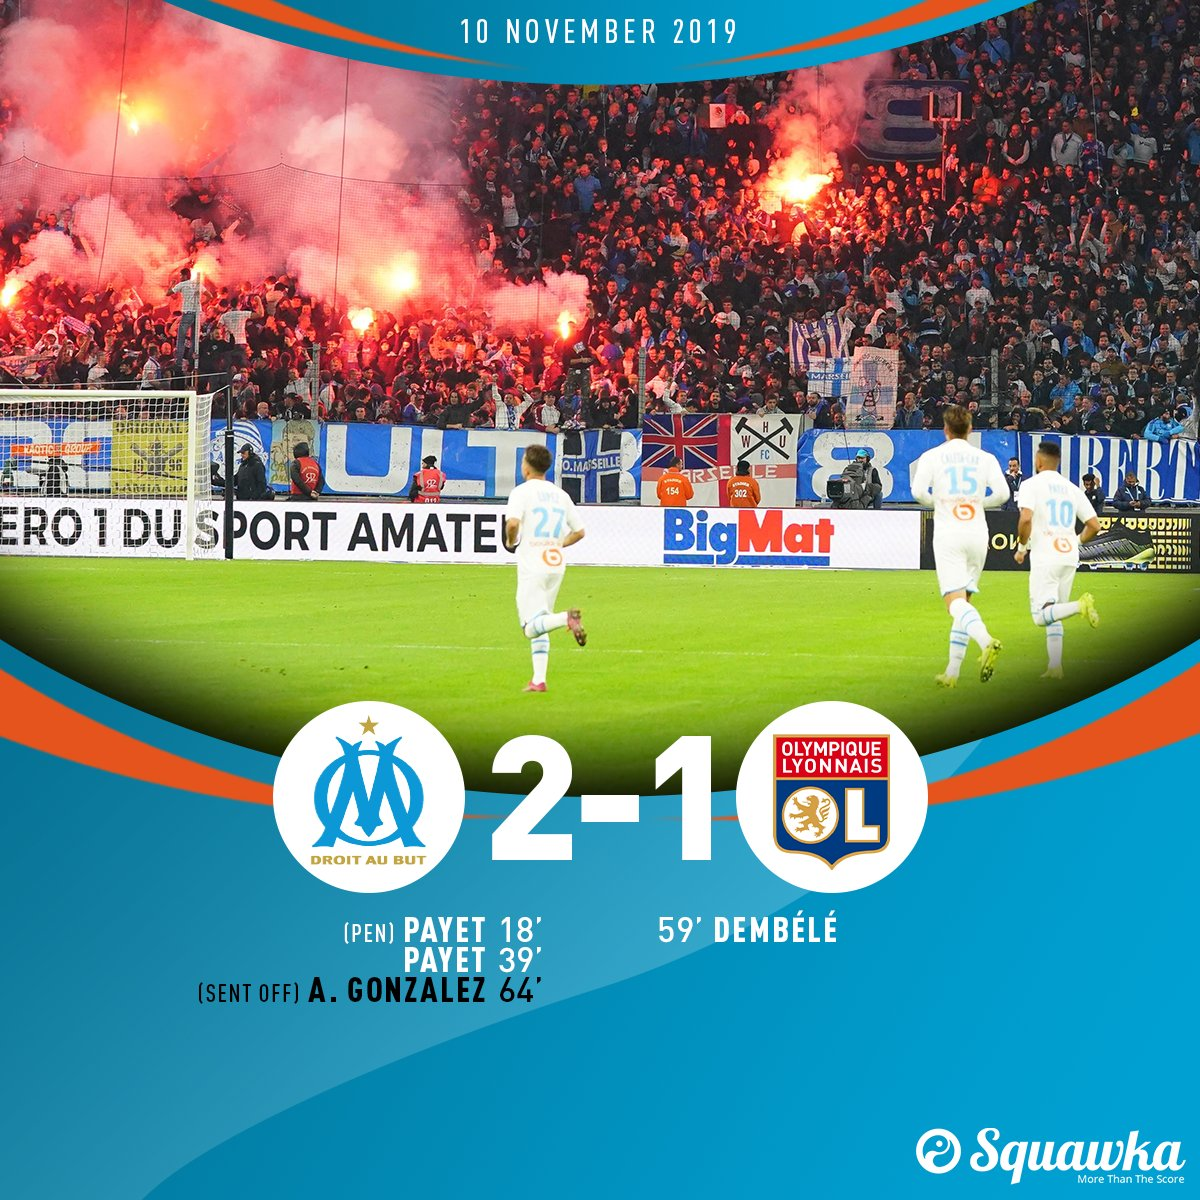 OM 2-1 OL FT: Marseille triumph against Lyon in front of a new record attendance at the Stade Vélodrome. 🔥 65,421 🔥